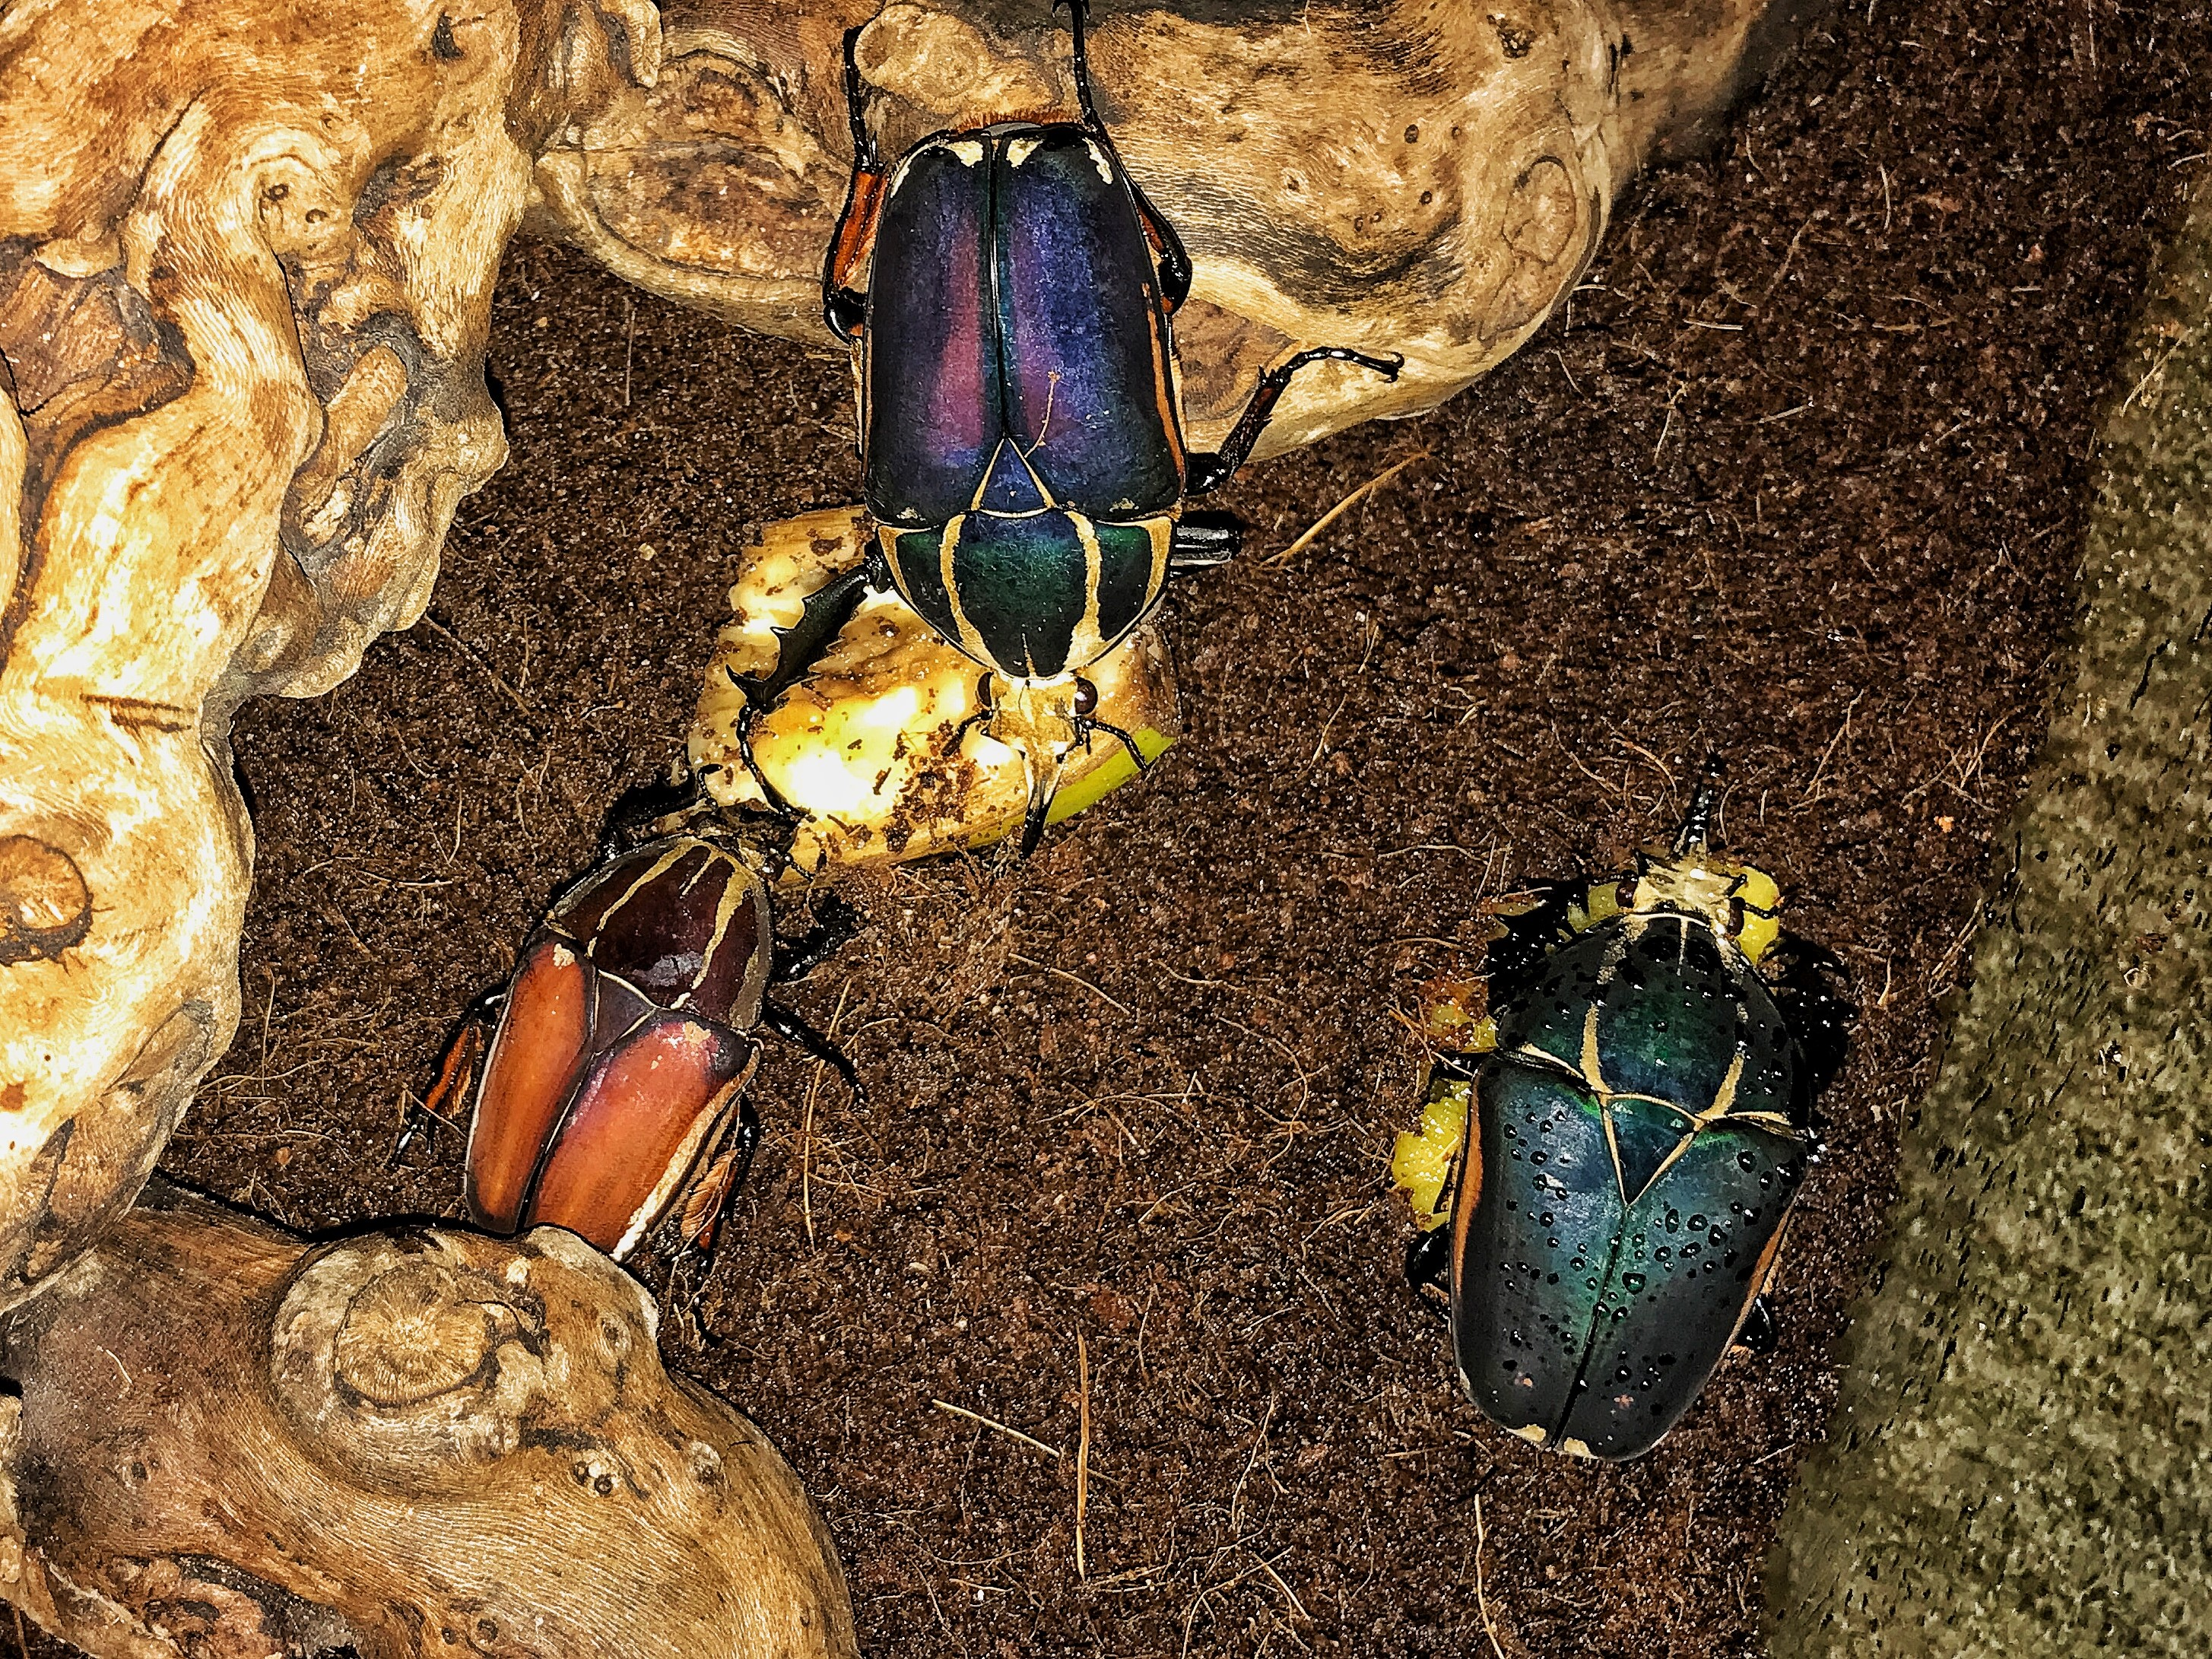 Flower Beetles in dirt at Bug Fest at the Academy of Natural Sciences